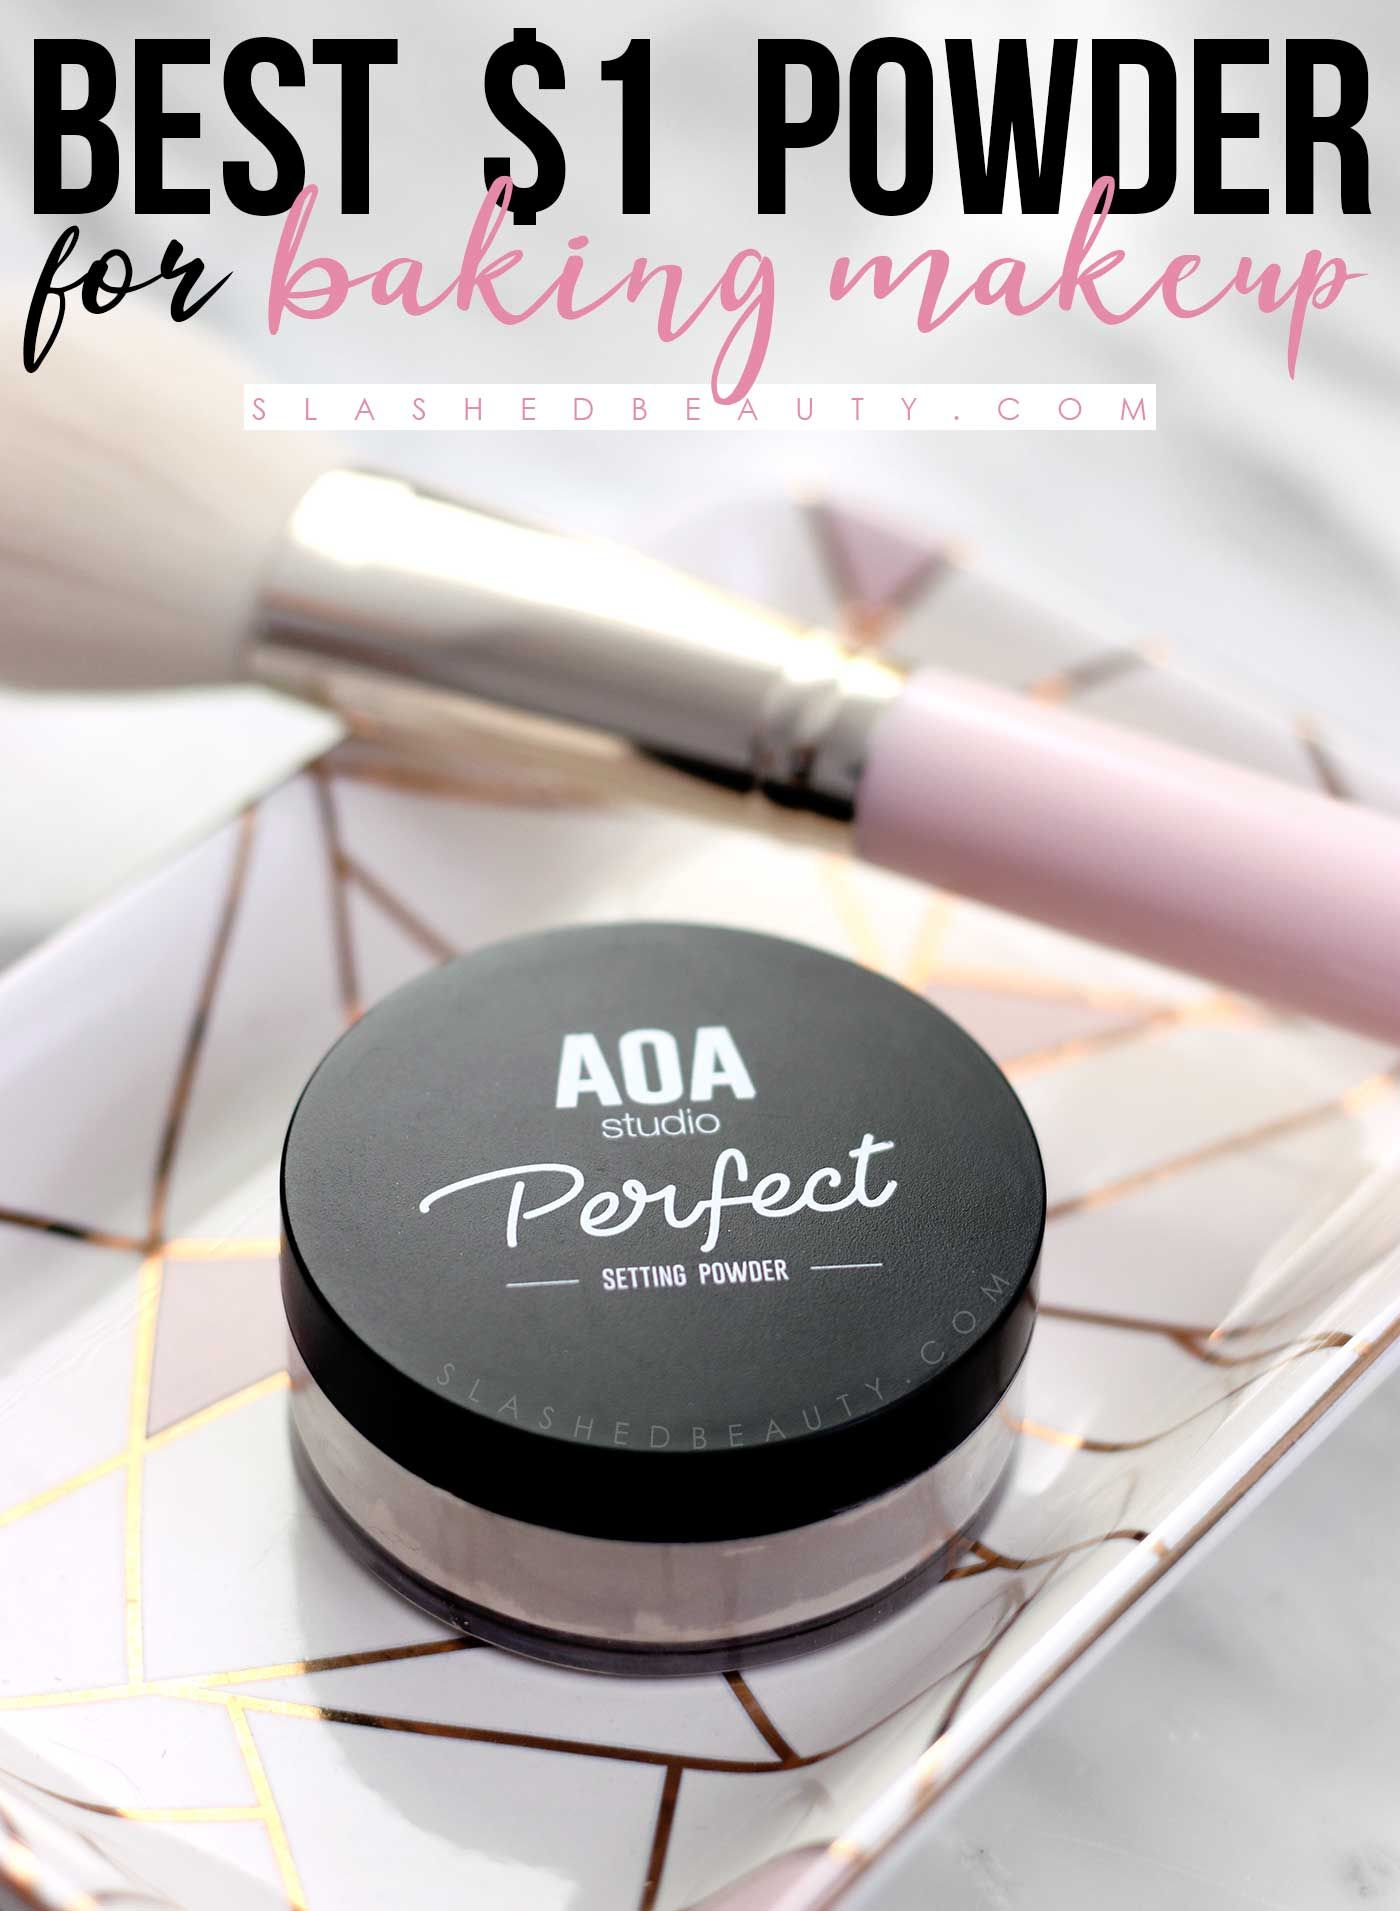 Best Powder for Baking on a Budget AOA Perfect Setting